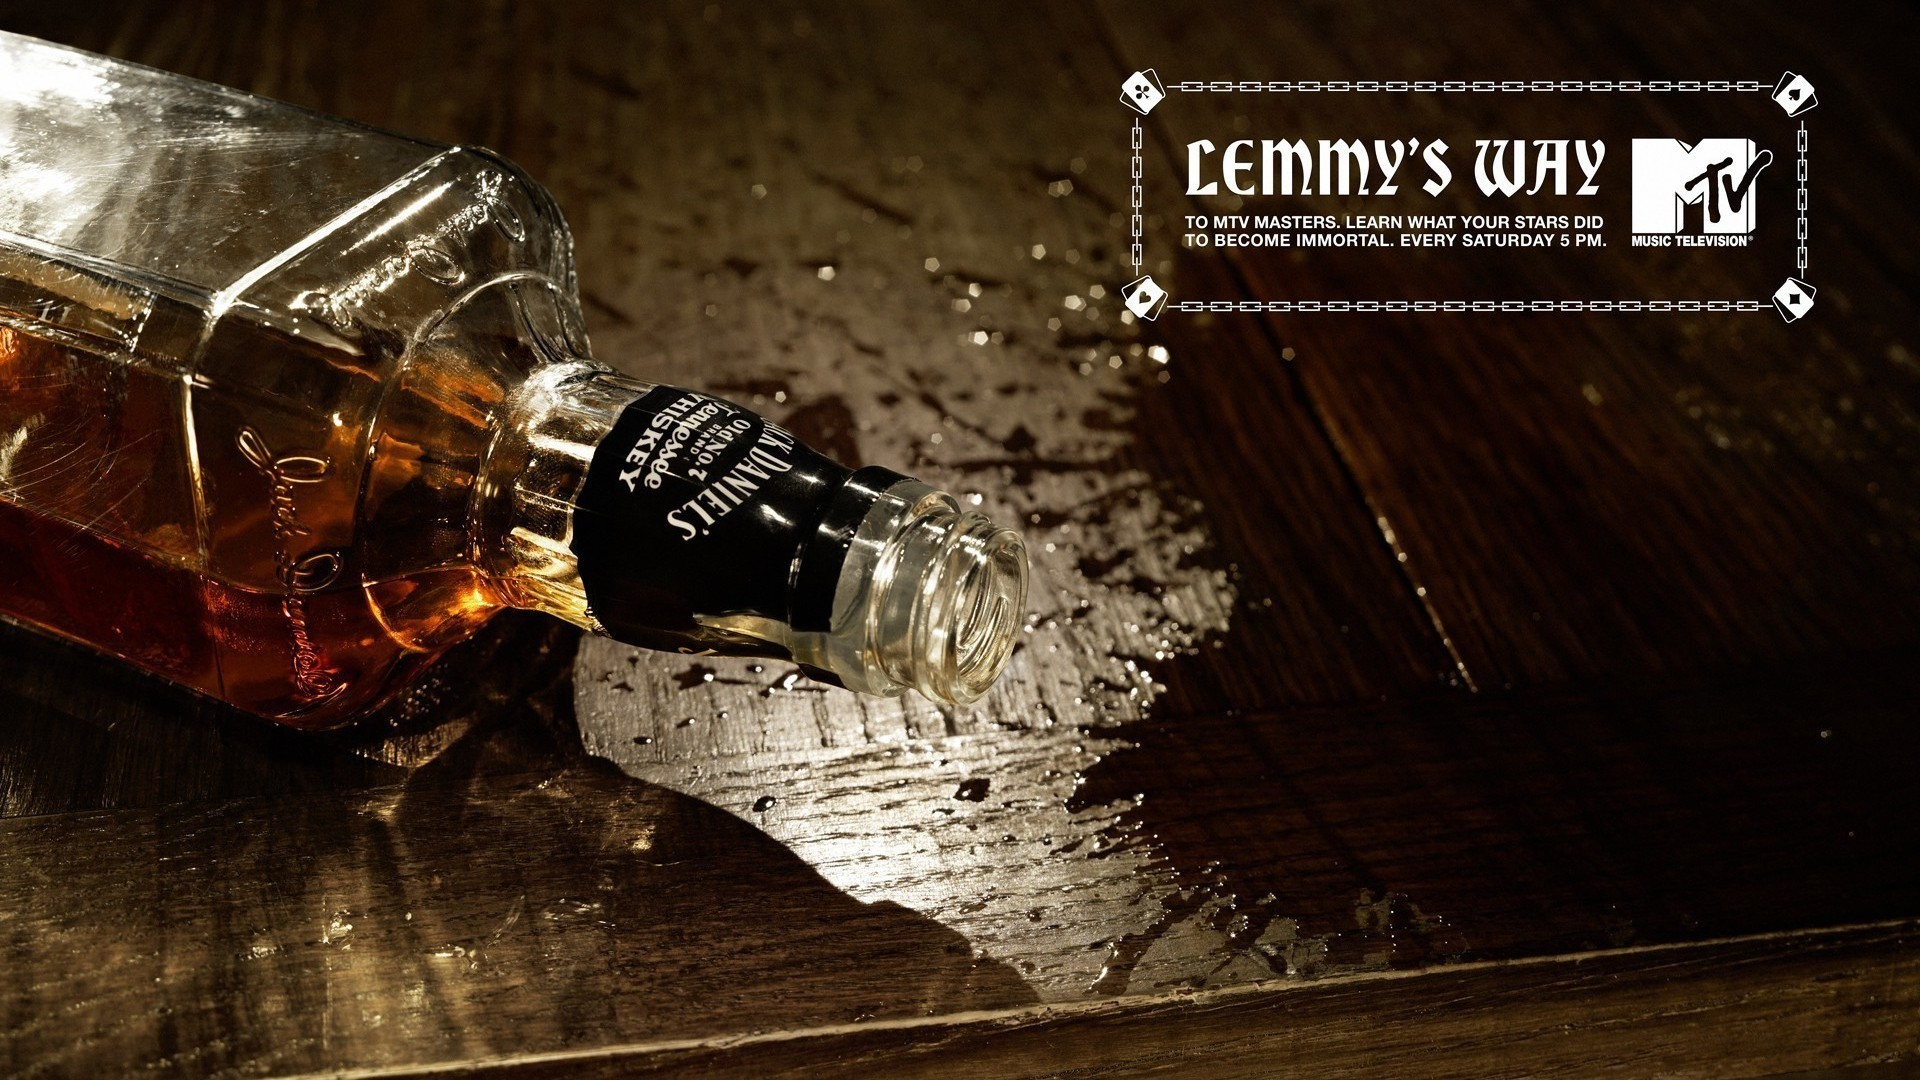 whiskey motorhead mtv Lemmy HD Wallpaper